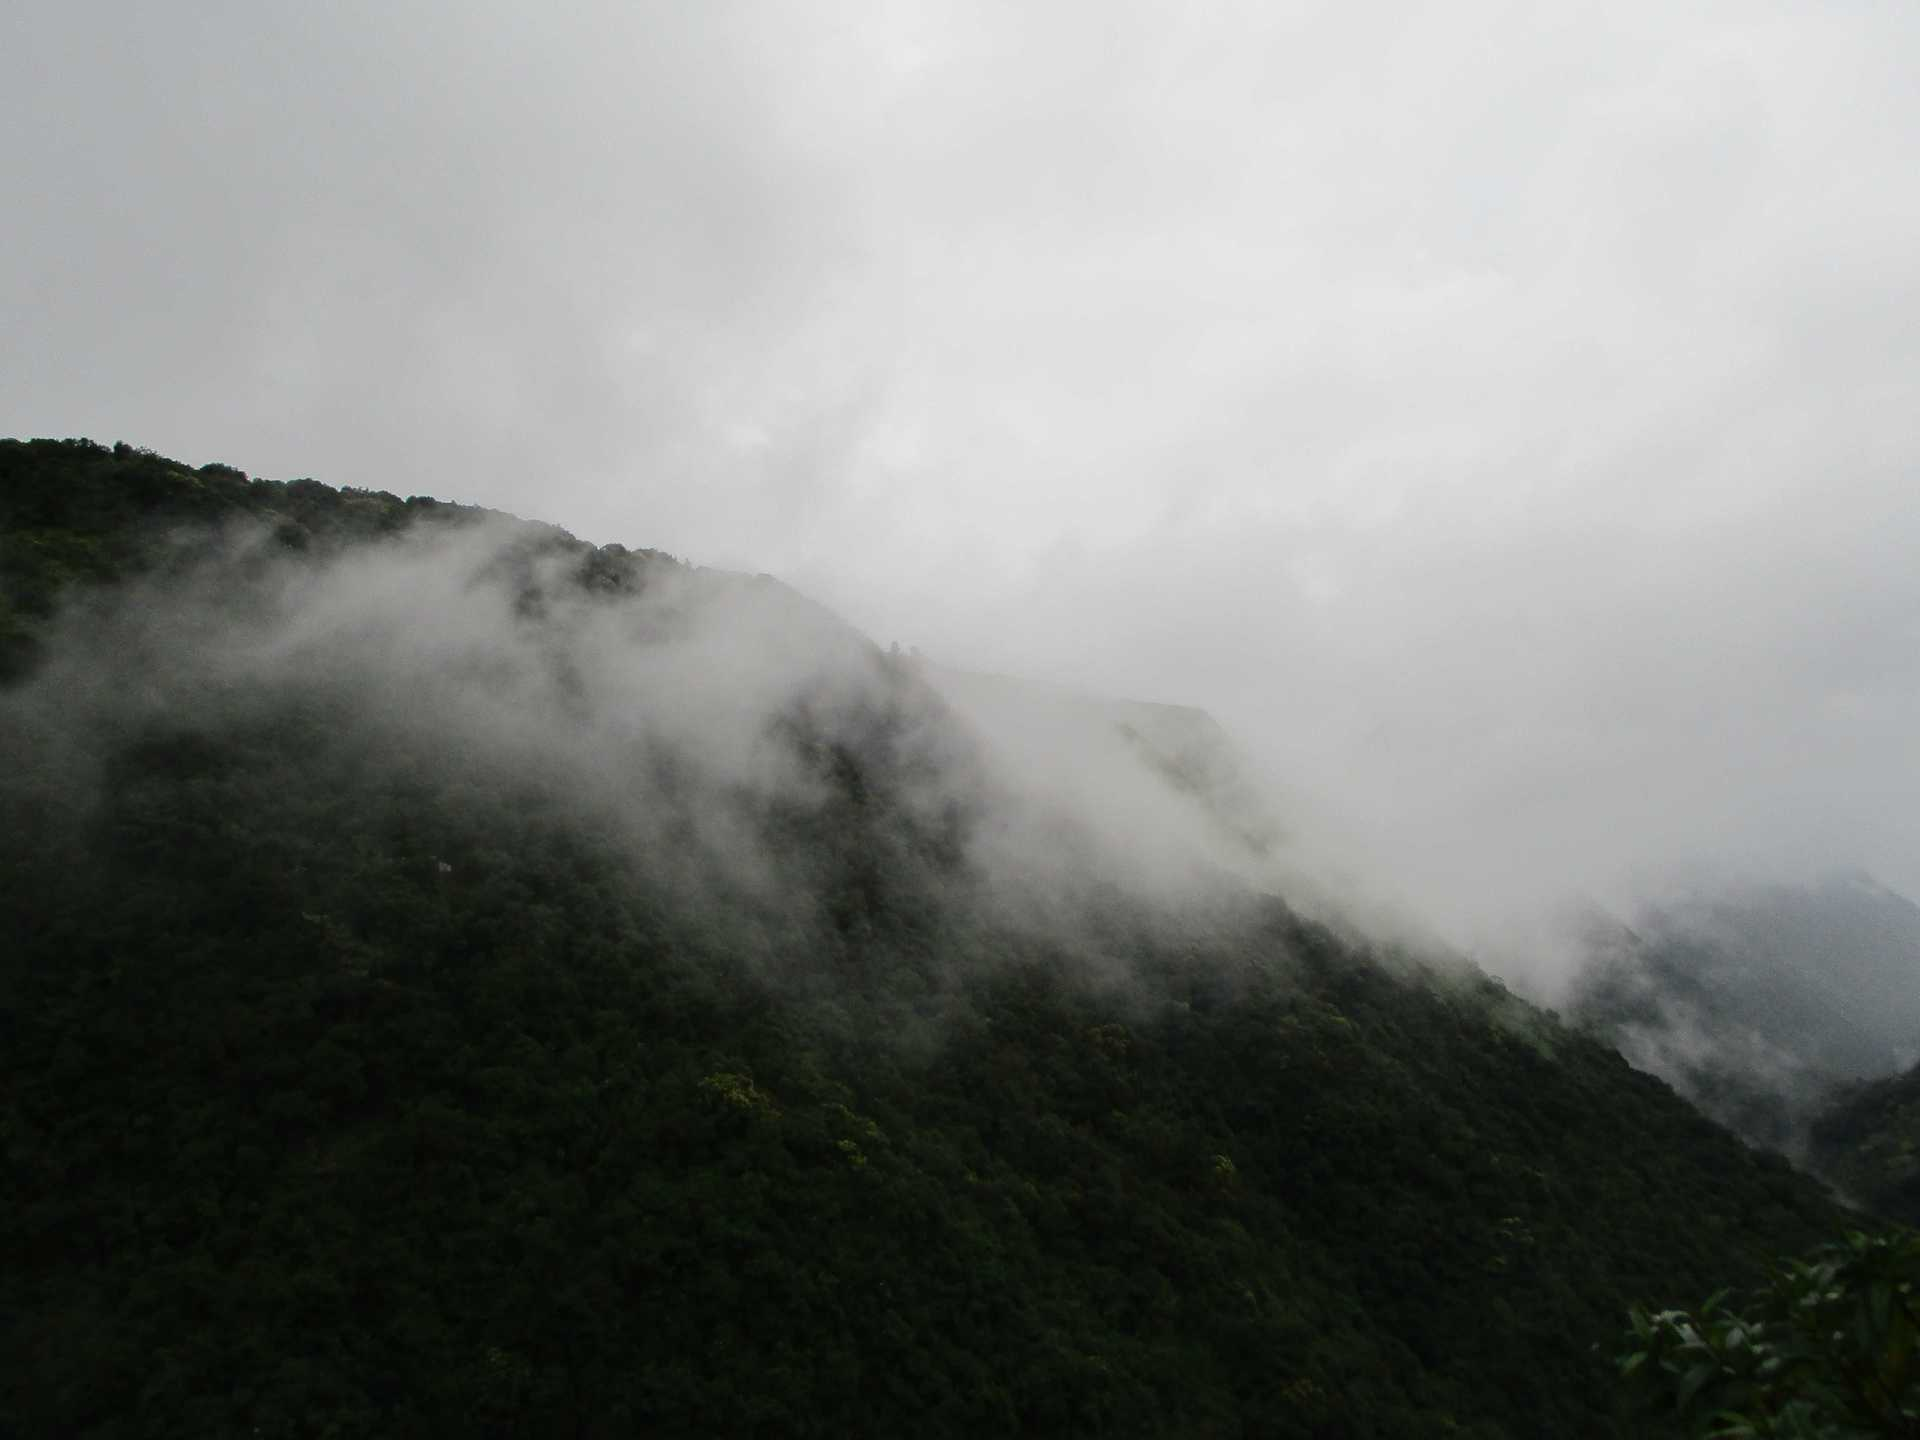 Meghalaya.... a misty mystery in North East India. image